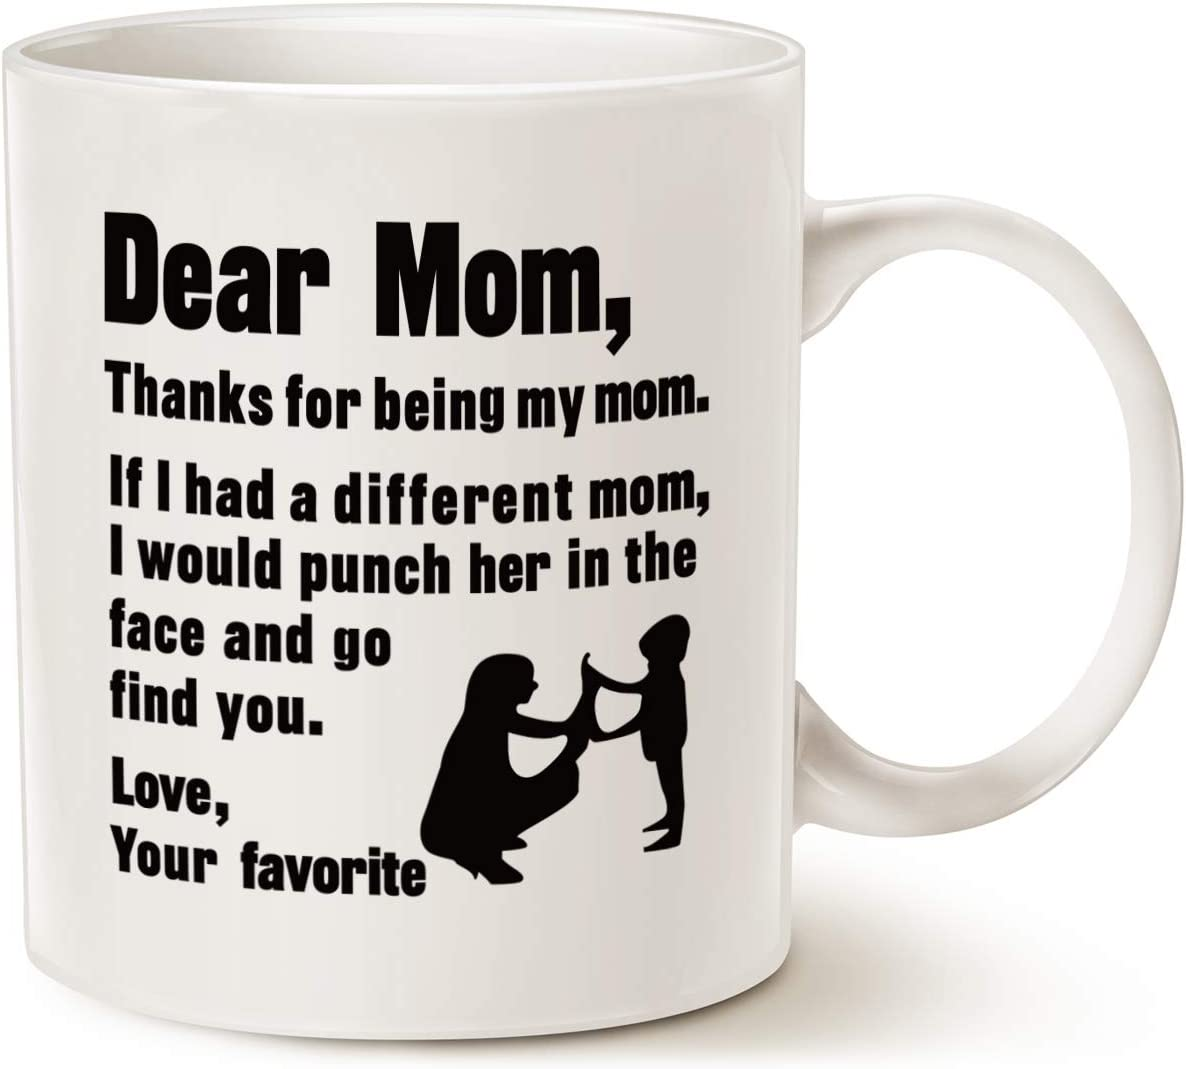 MAUAG Funny Mothers Day for Mom Coffee Mug, Dear Mom, Thanks for Being My Mom. If I Had. Love, Your Favorite Best Gag Gifts for Mom Mother Cup, White 11 Oz